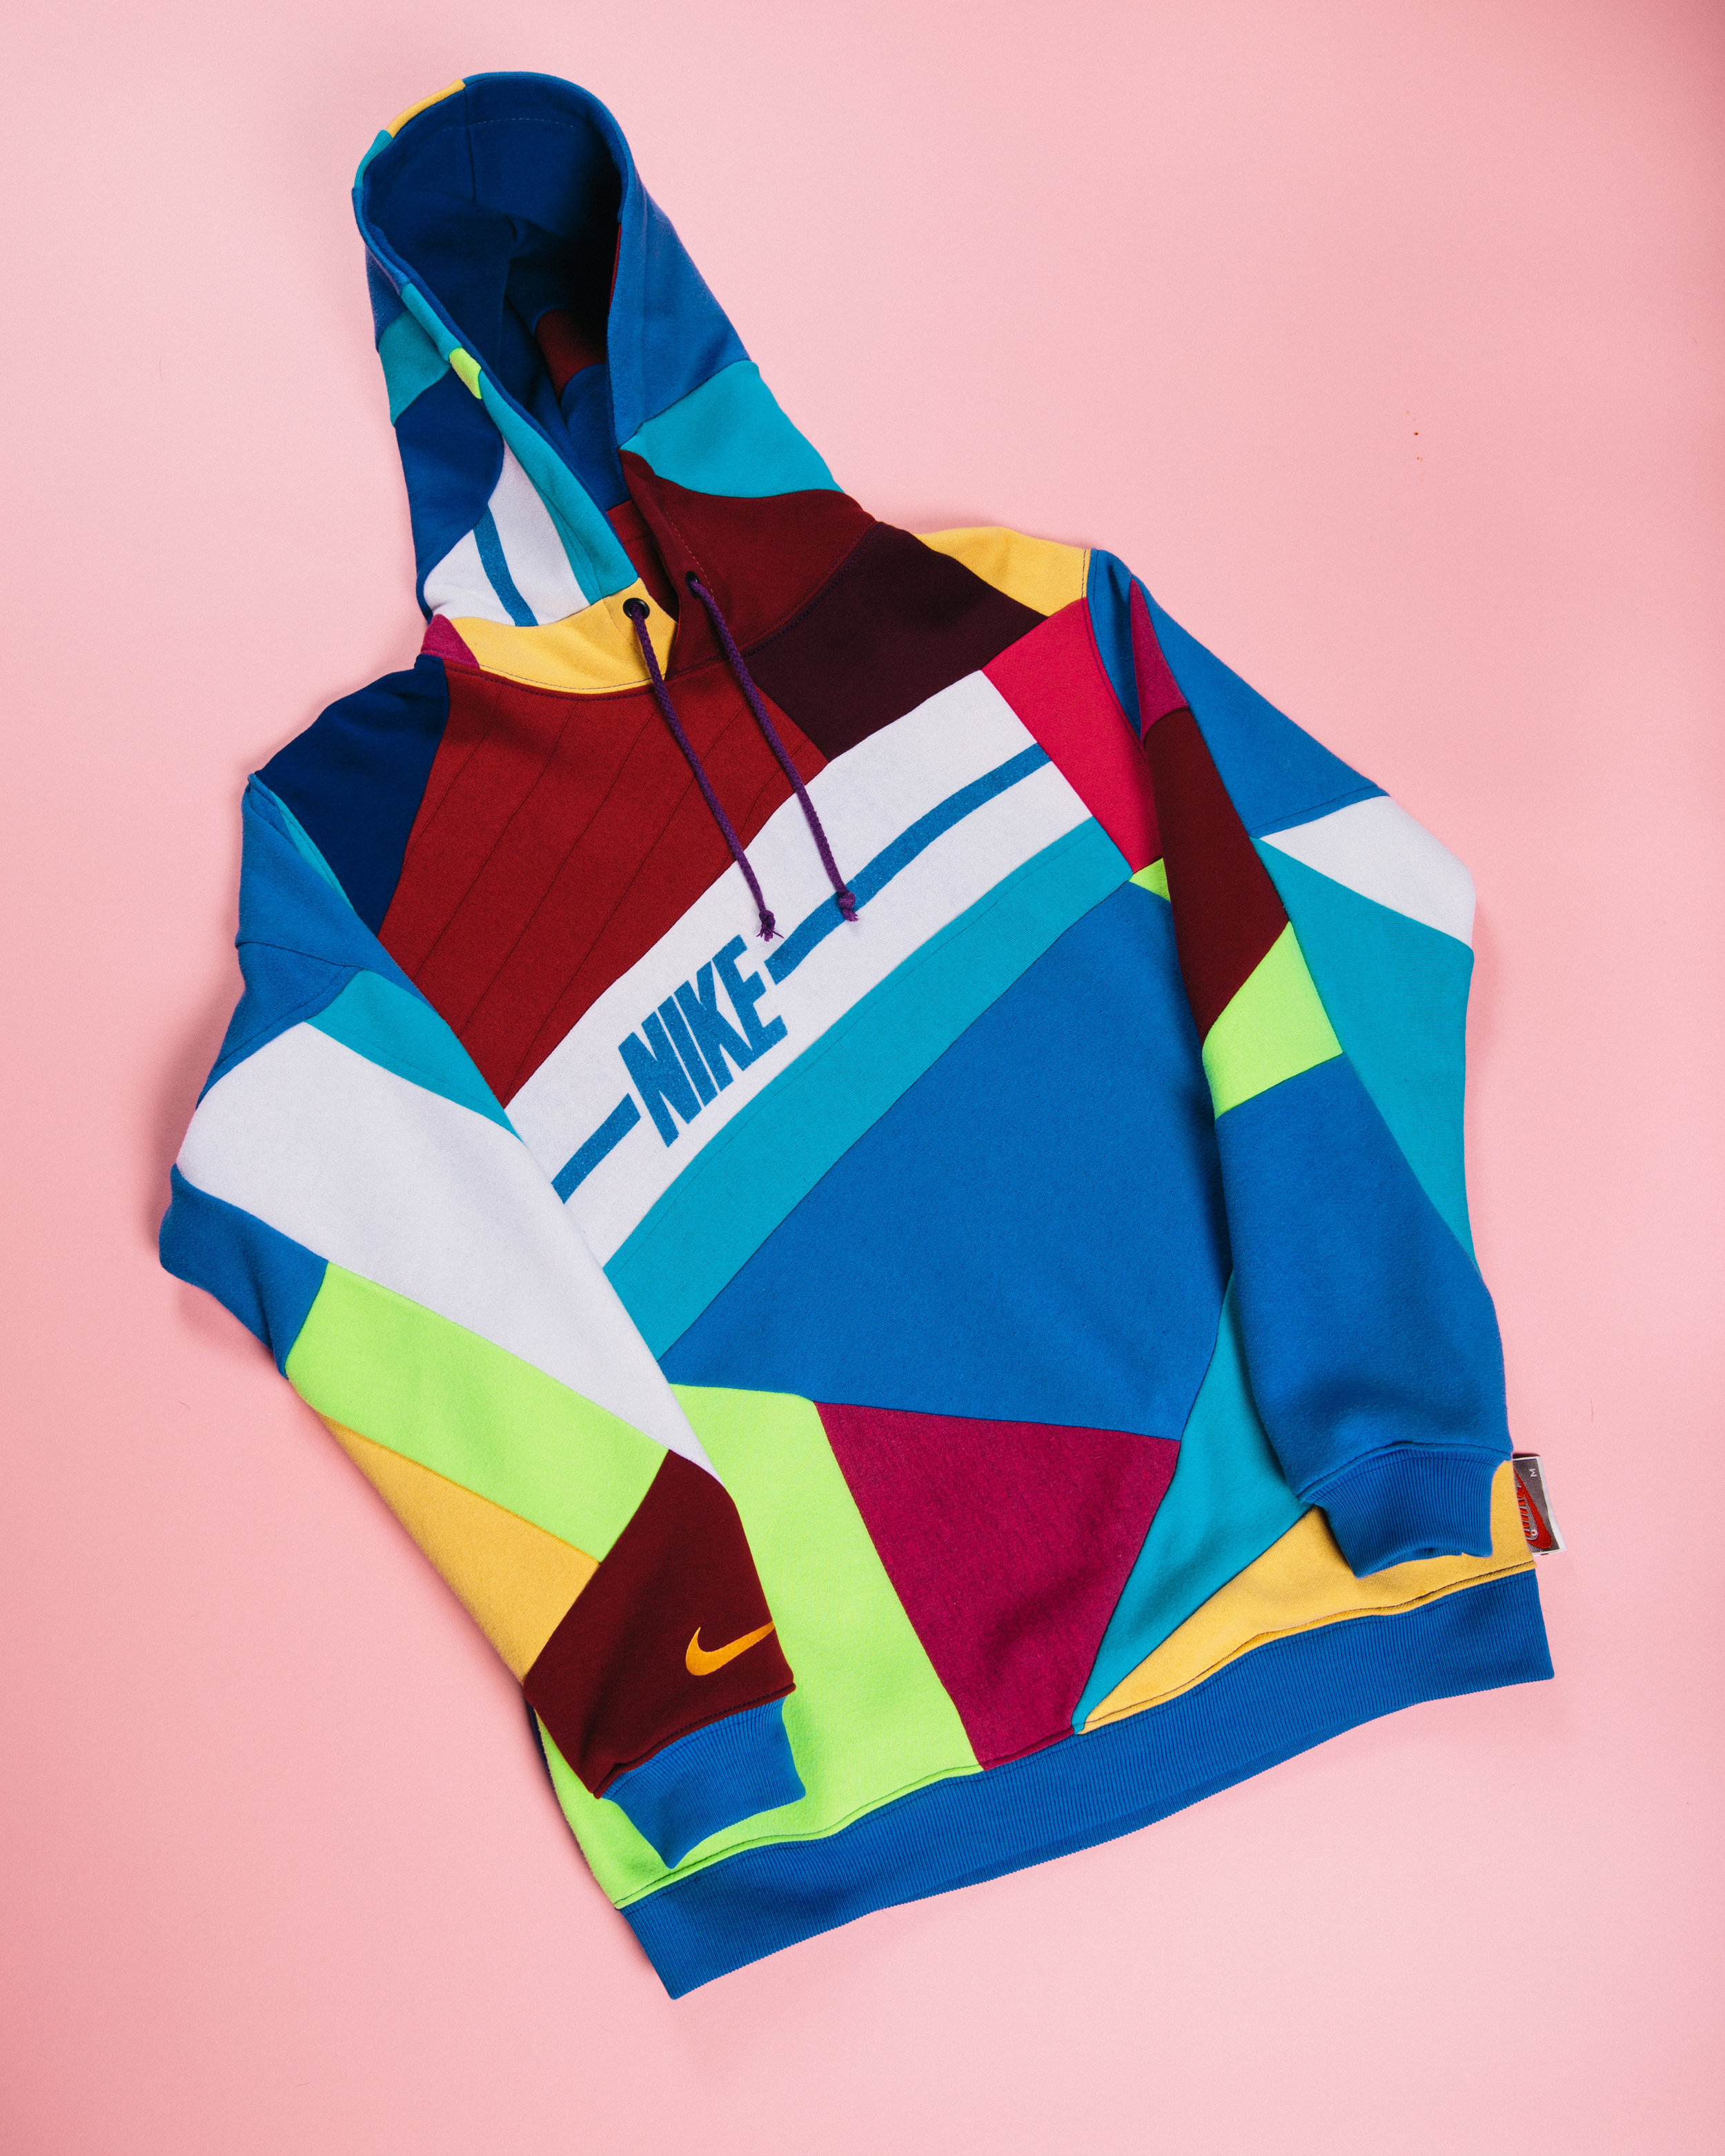 Multi-Layered Nike - Made reusing several Nike pieces as well as other texture and colored patterns of fleece to make a truly one of a kind piece.